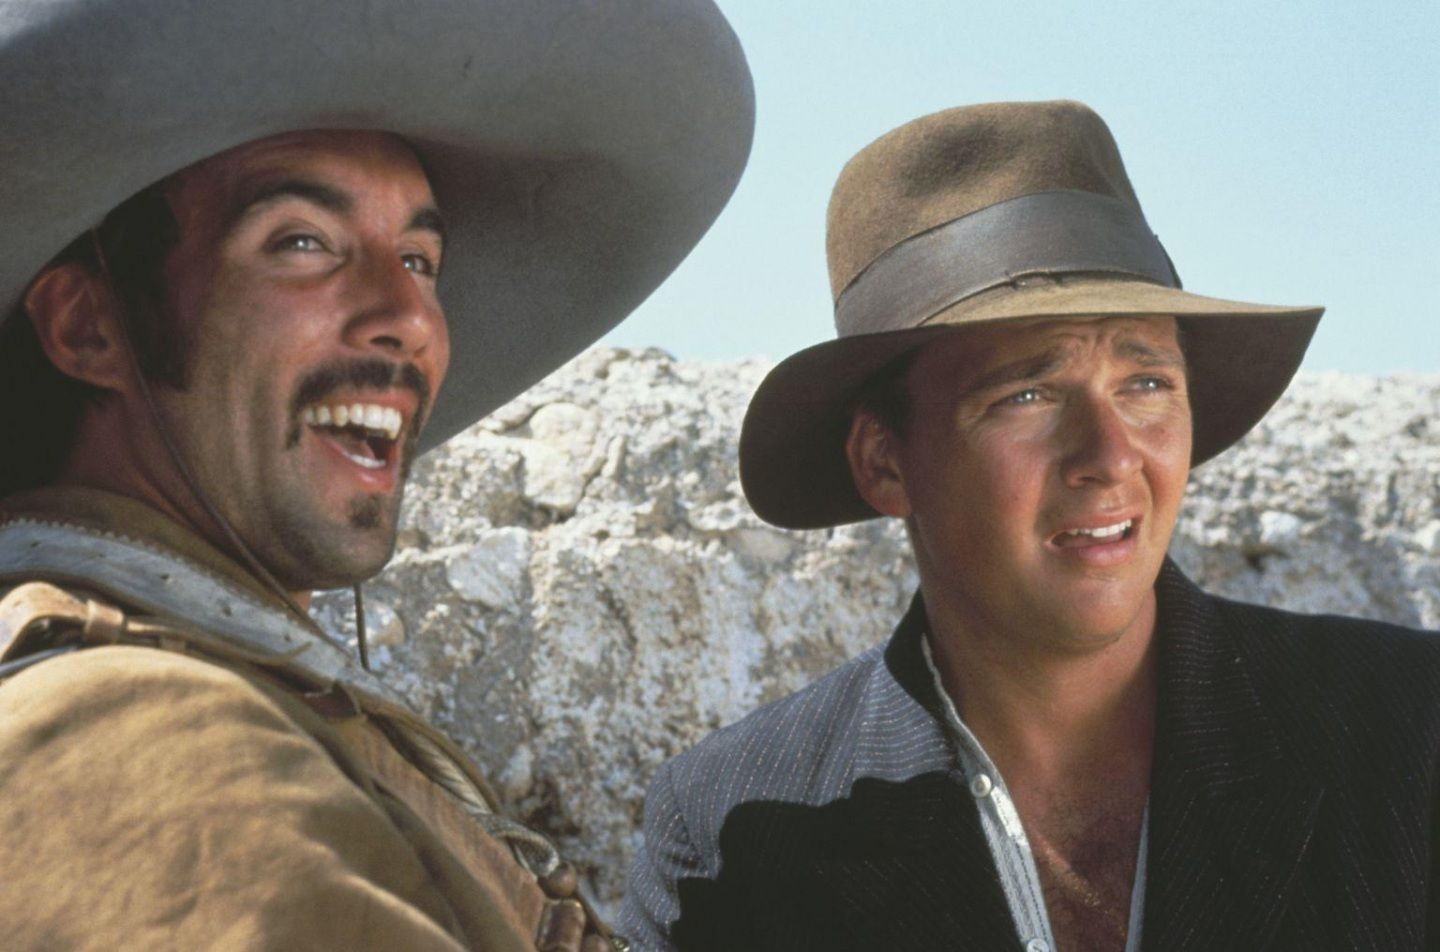 Young Indiana Jones Indiana Jones Films Indiana Jones Sean Patrick Flanery